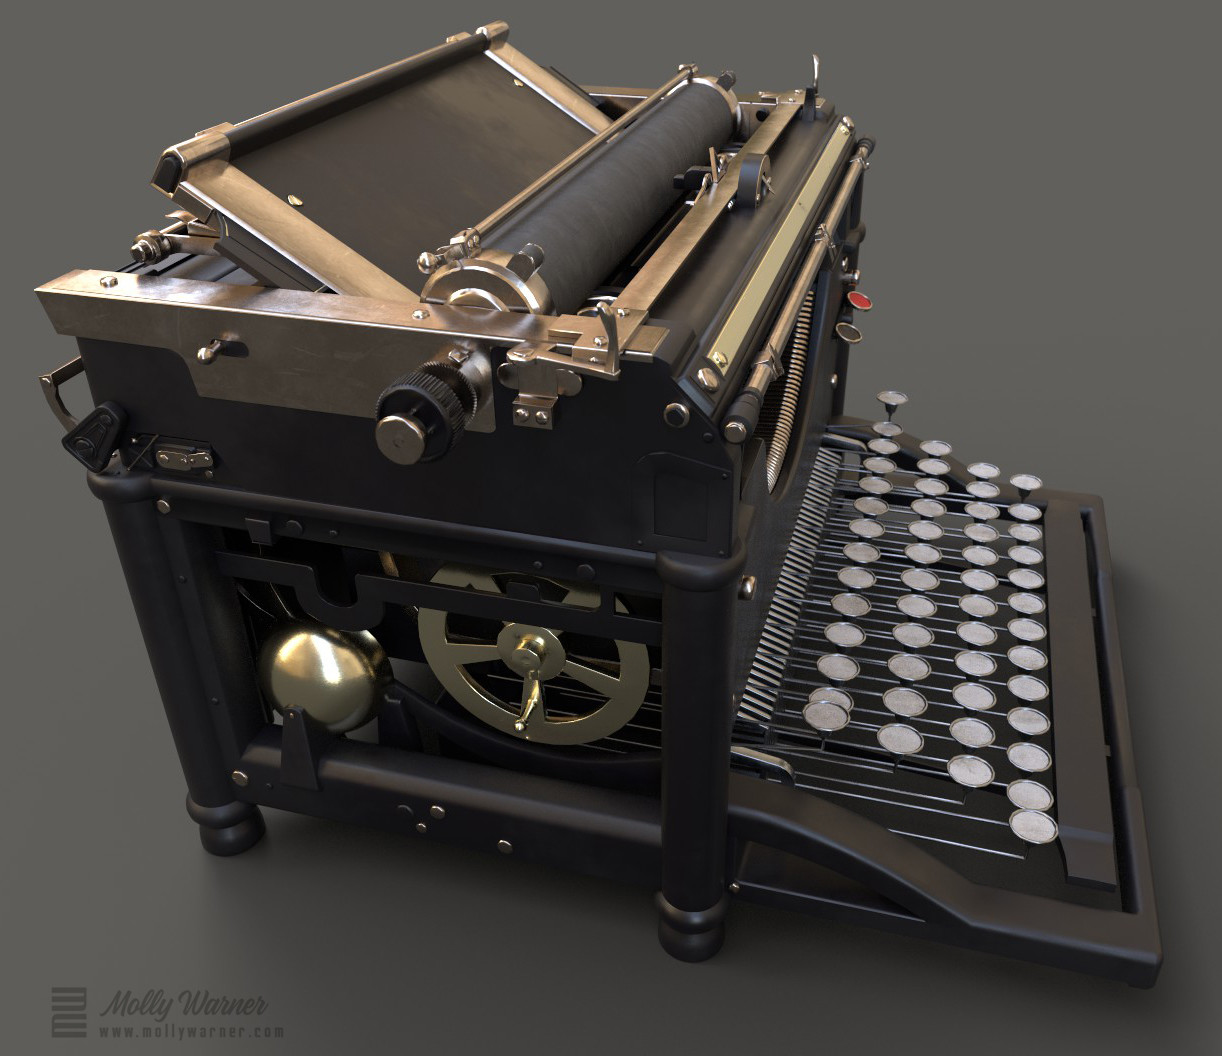 Molly warner iray render typewriter side final